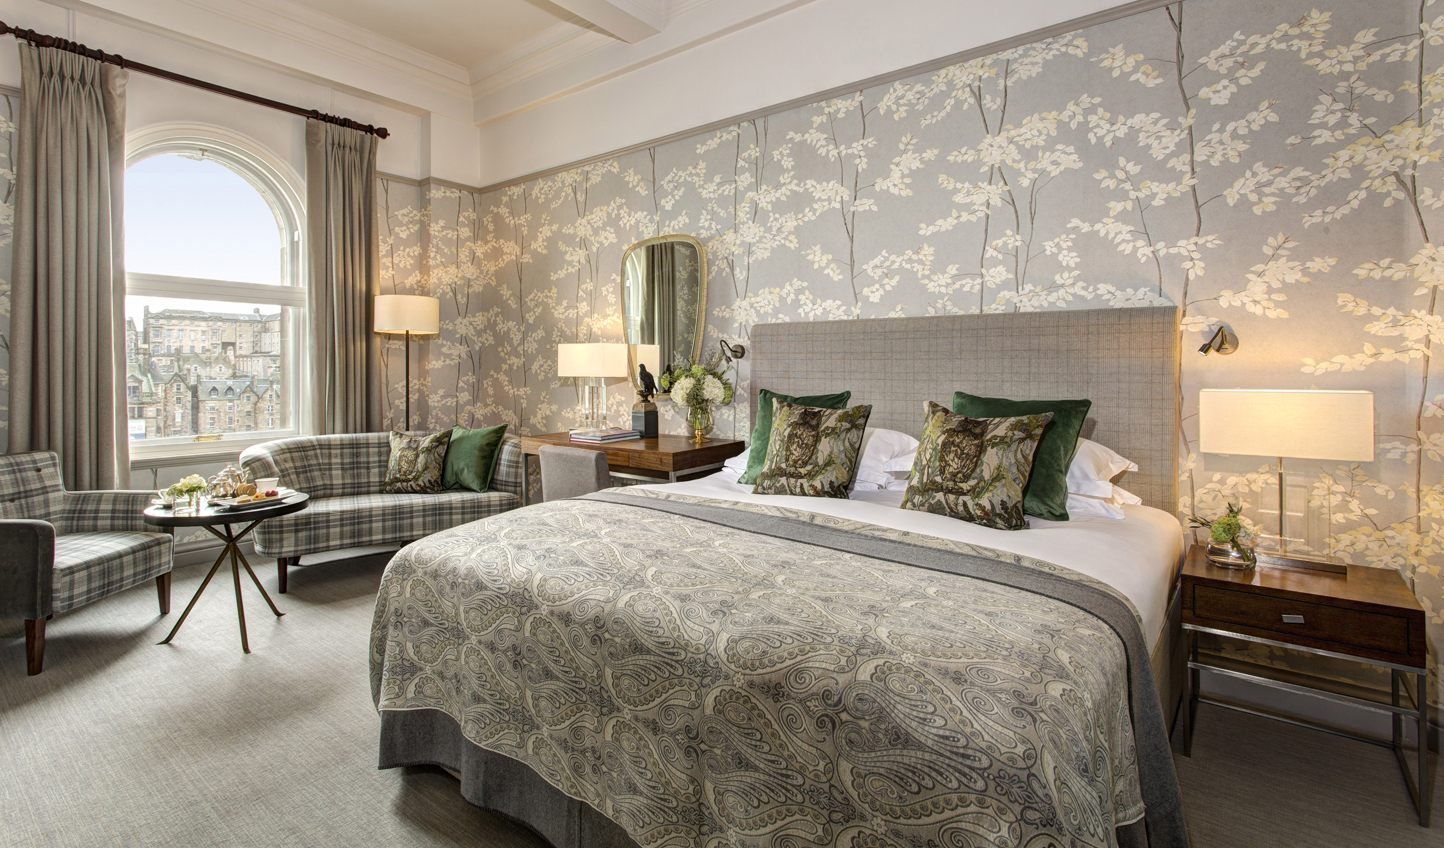 Classically elegant with traditional Scottish touches